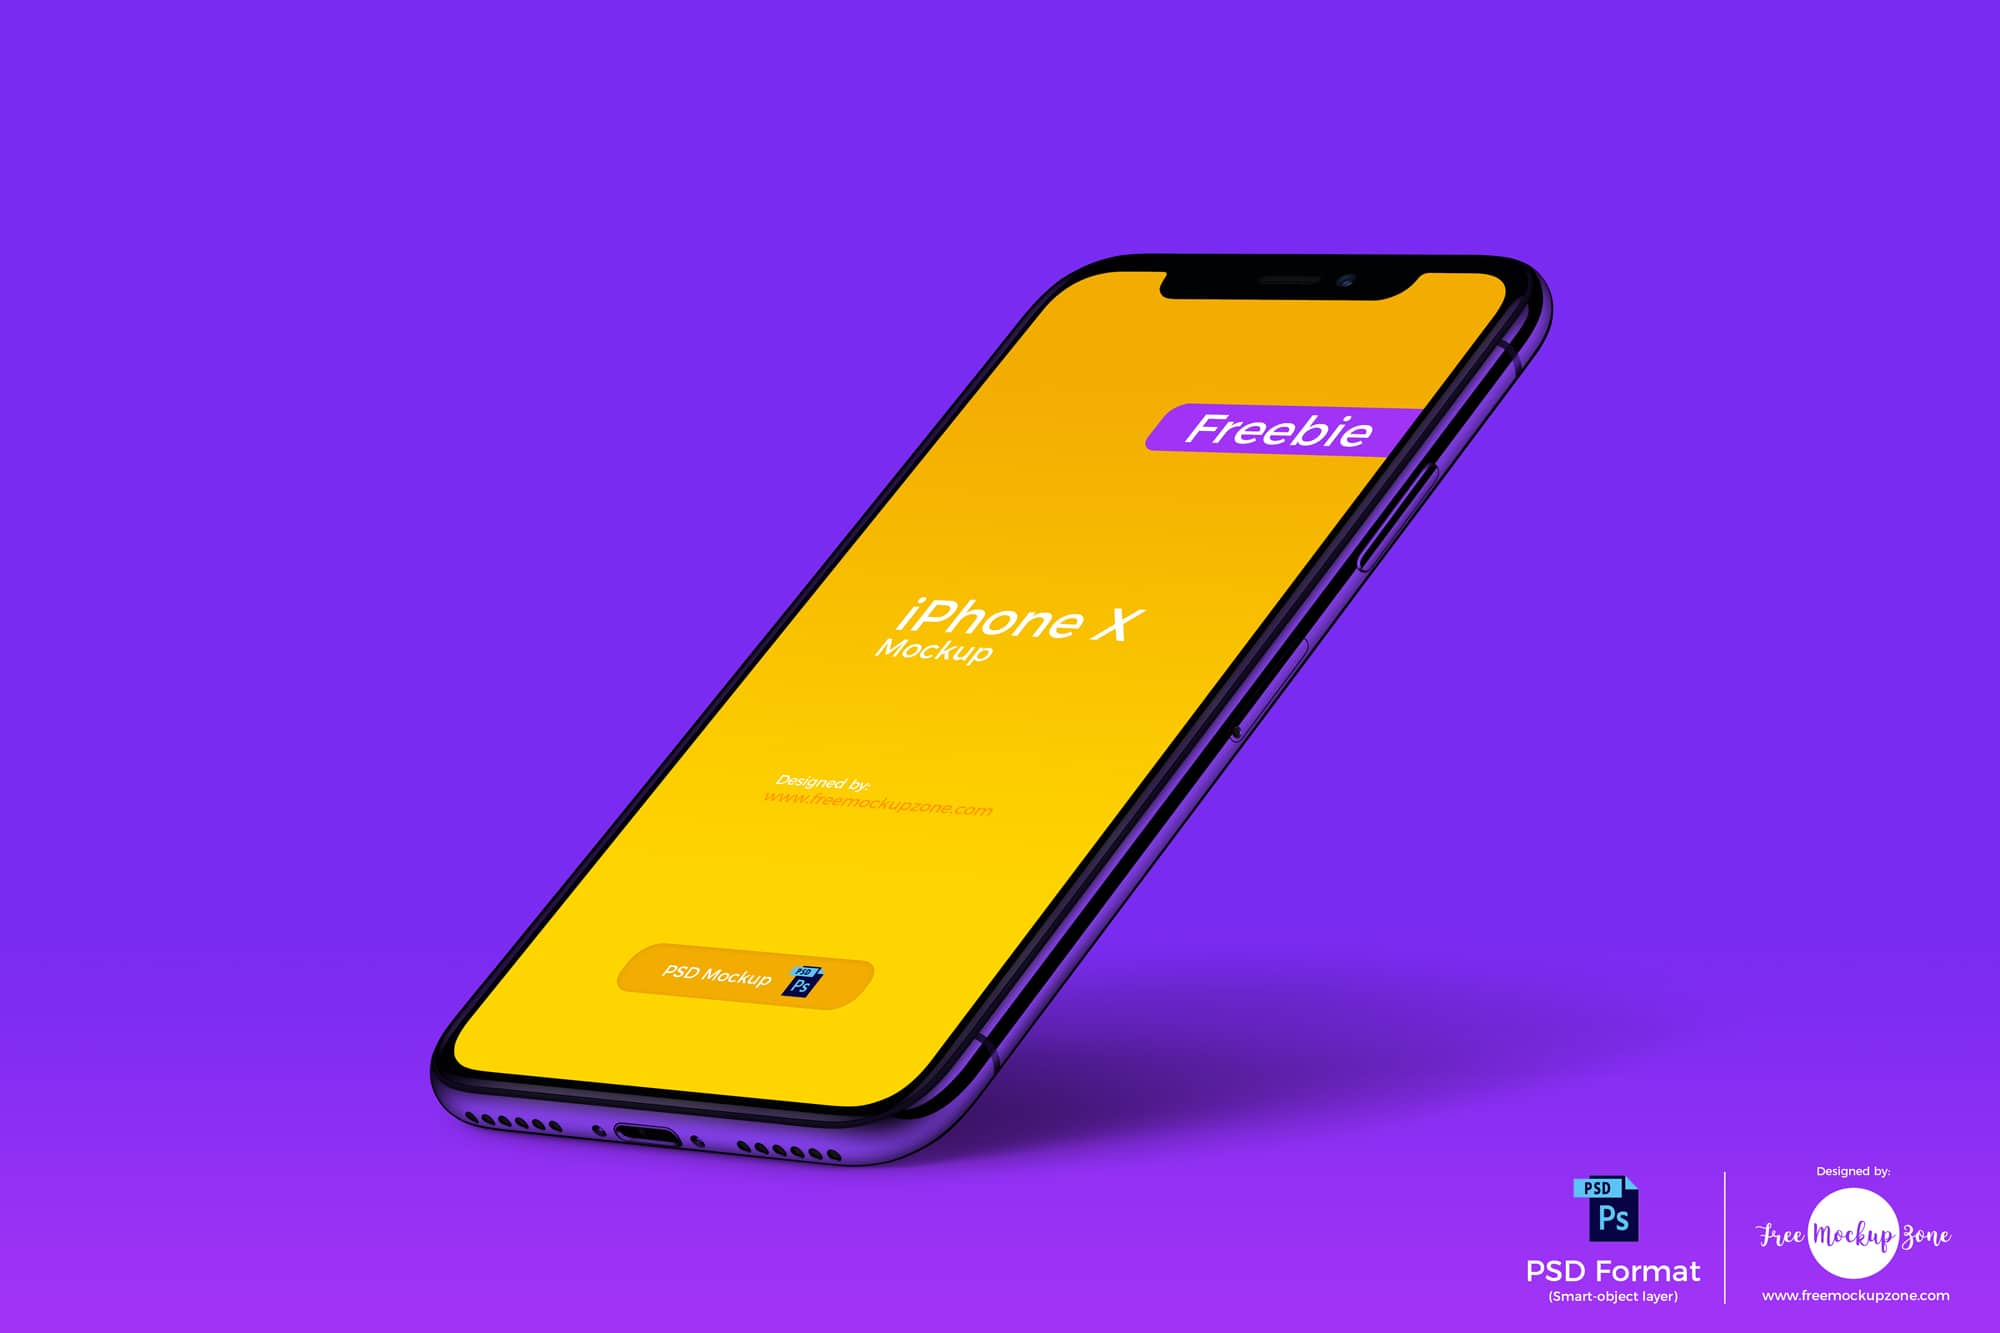 Free iPhone X Mockup for Photorealistic Presentation